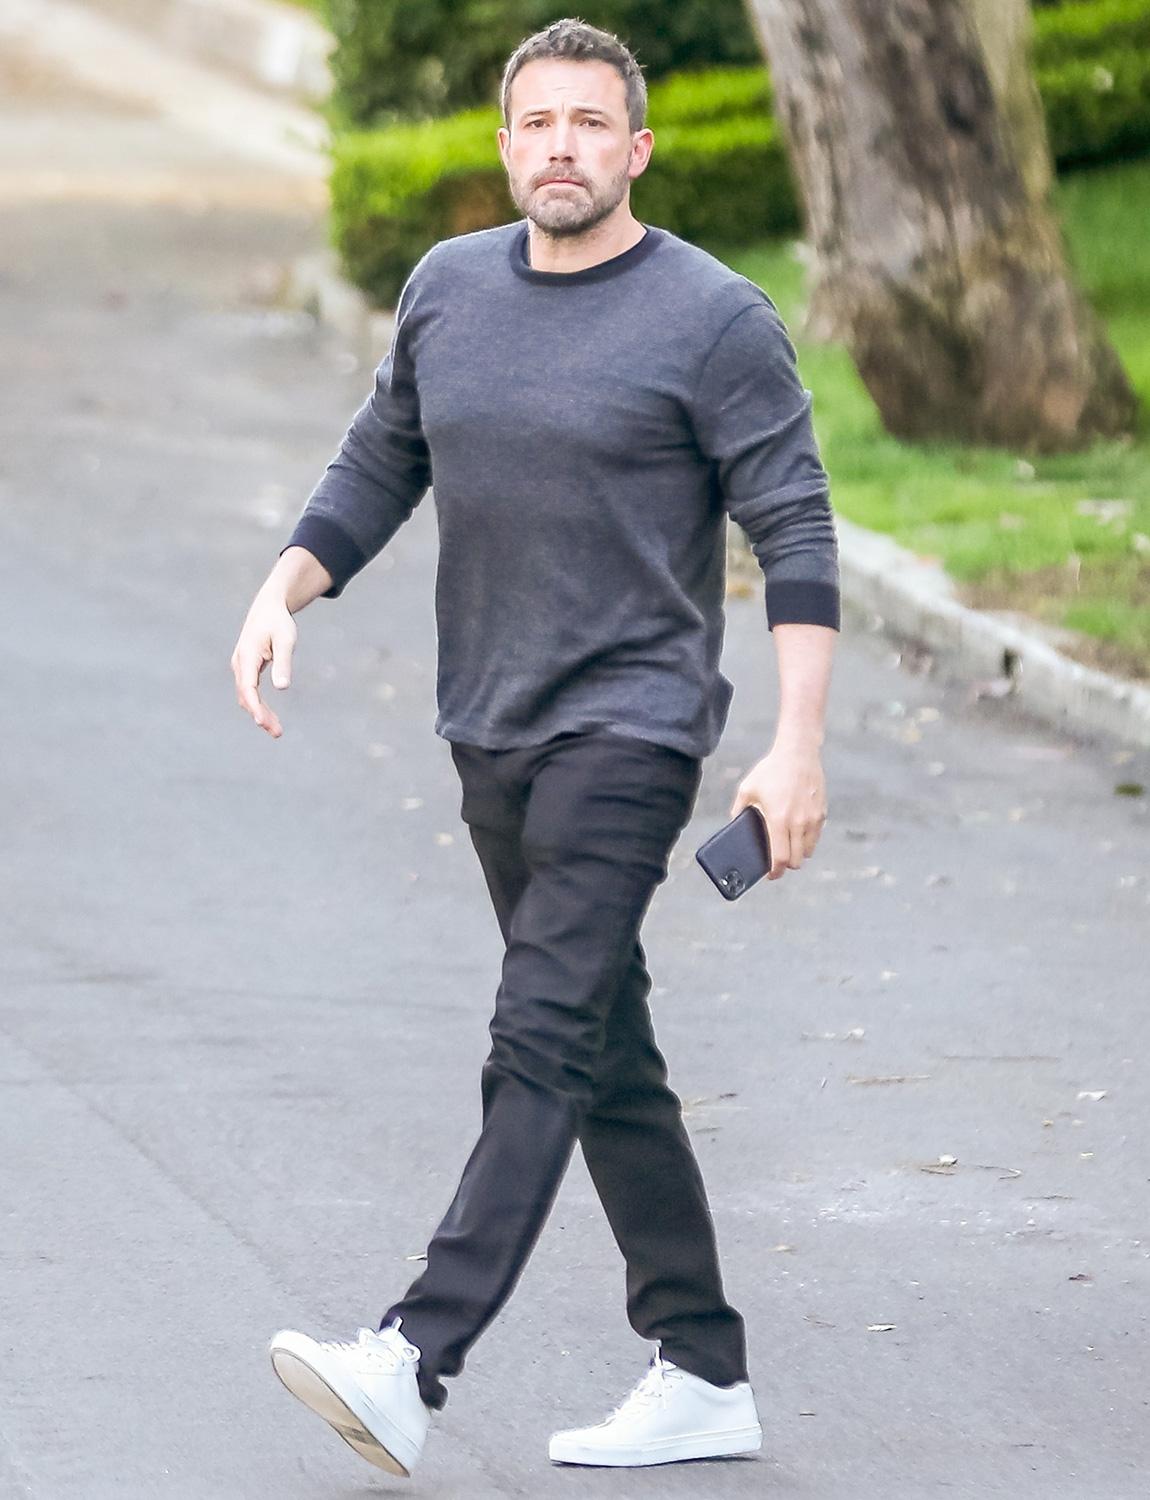 Ben Affleck arrives for fatherly duties after spending time with his new girlfriend Ana de Armas